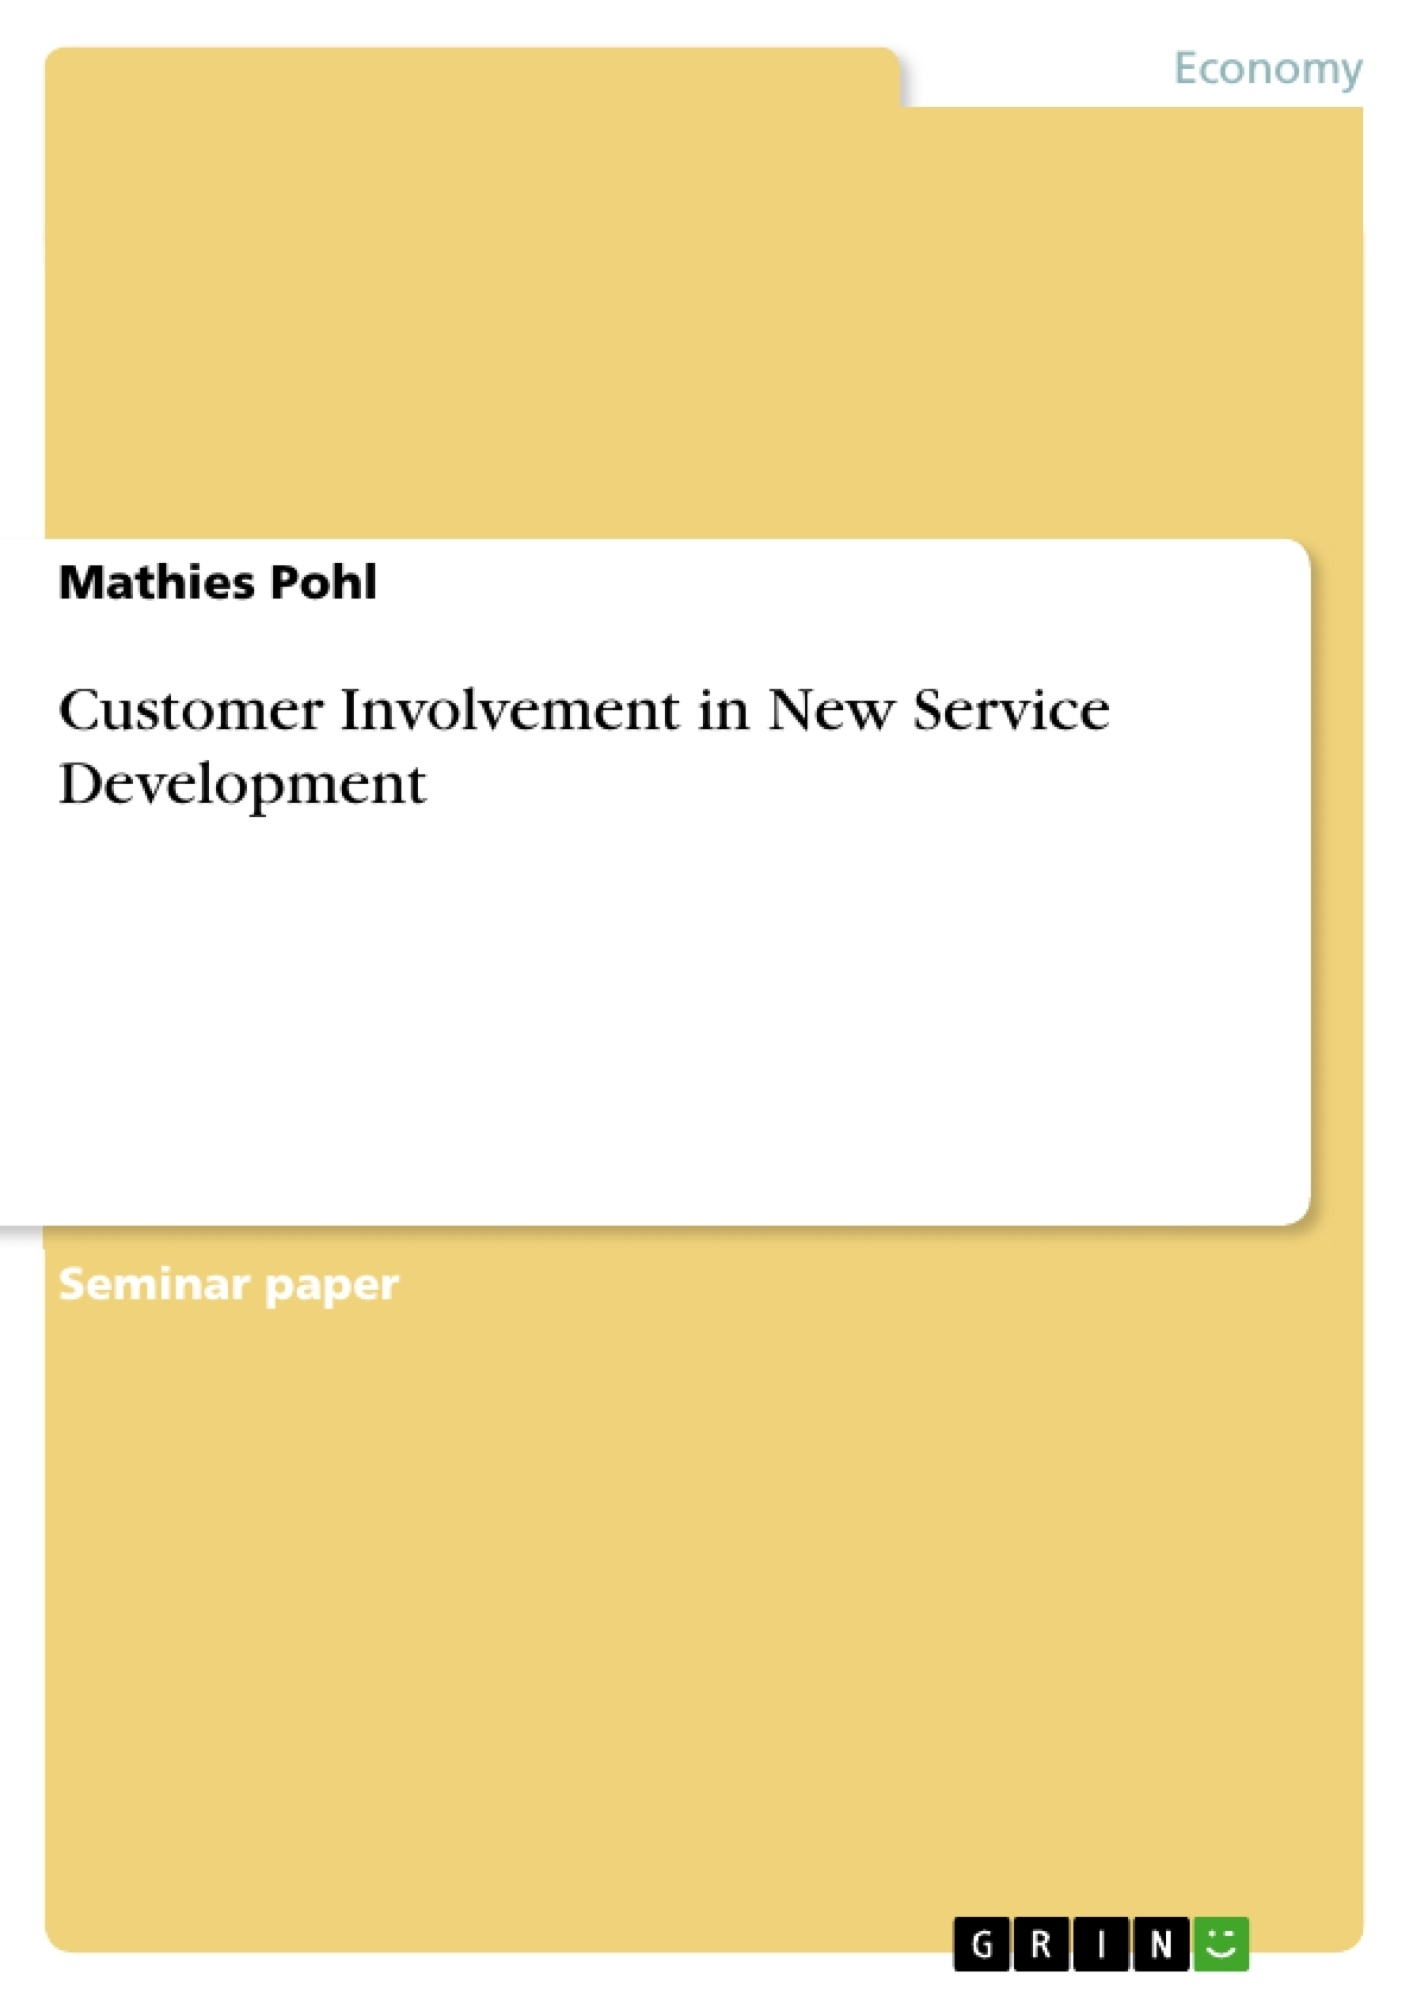 Title: Customer Involvement in New Service Development